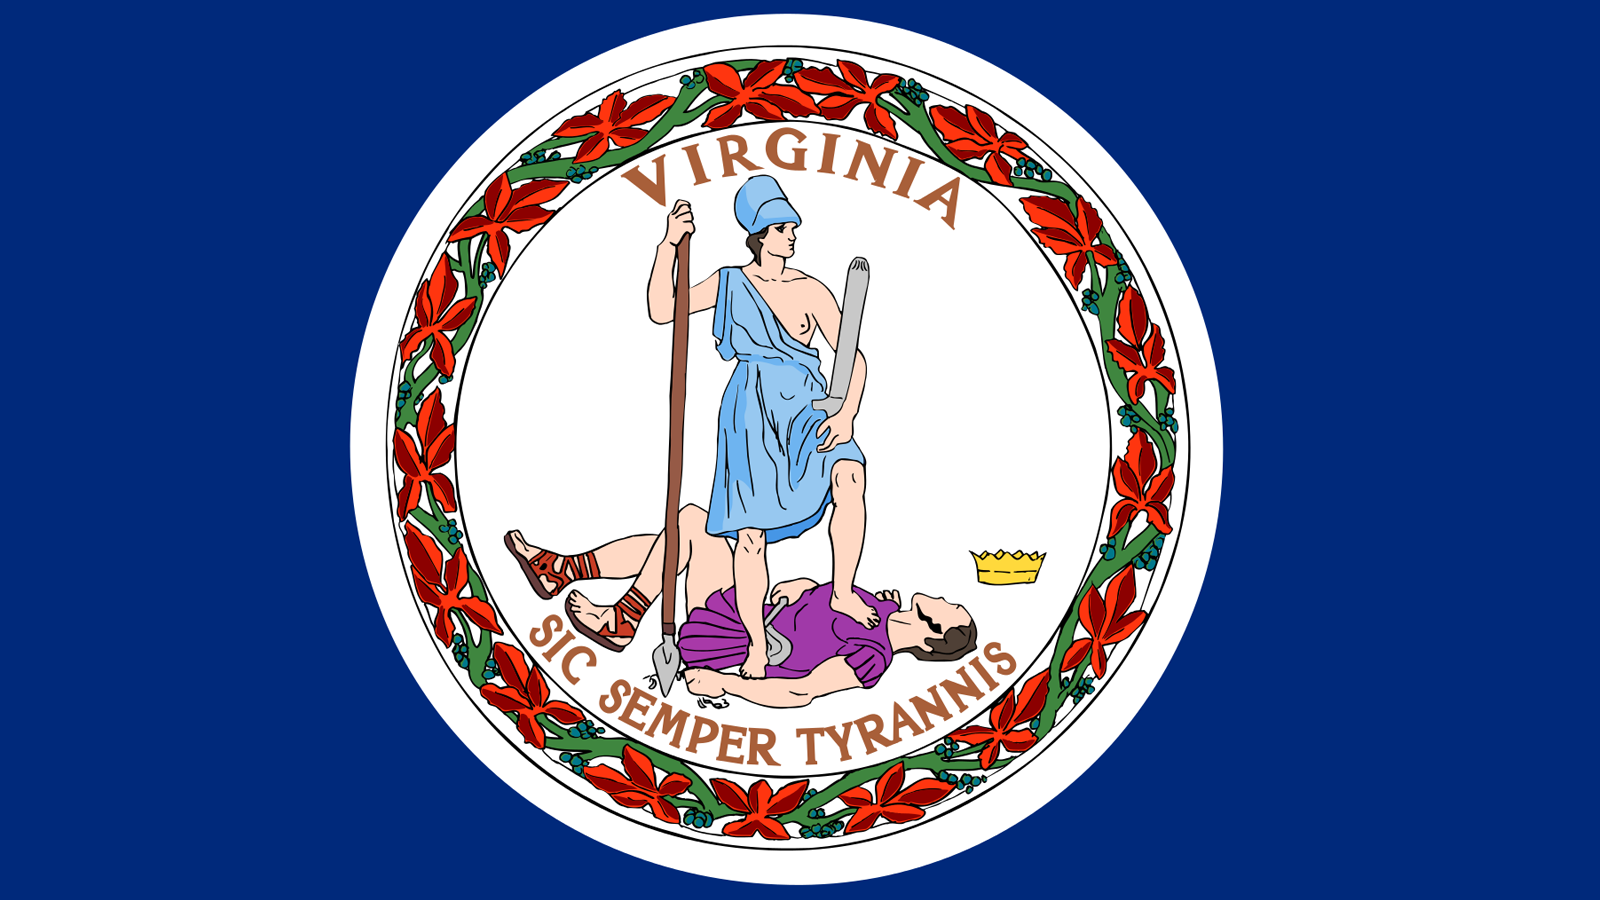 Equality Virginia, HRC Hail Senate for Passing Non-Discrimination Protections, Call on House to Act